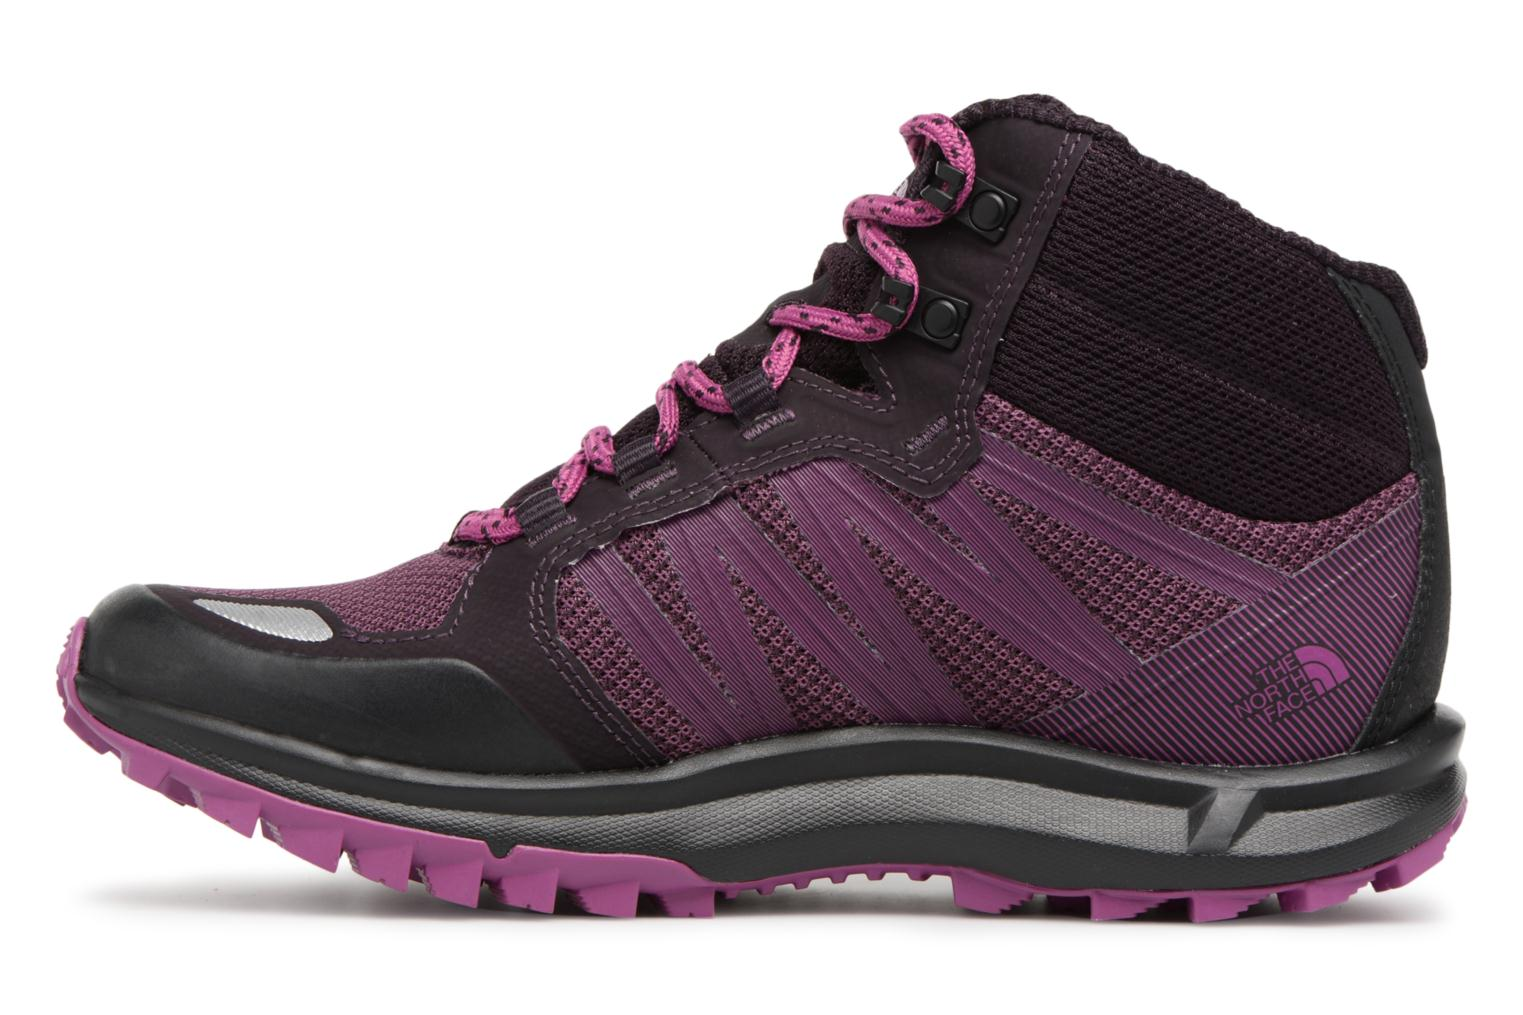 Chaussures de sport The North Face Litewave Faastpack Mid GTX W Violet vue face